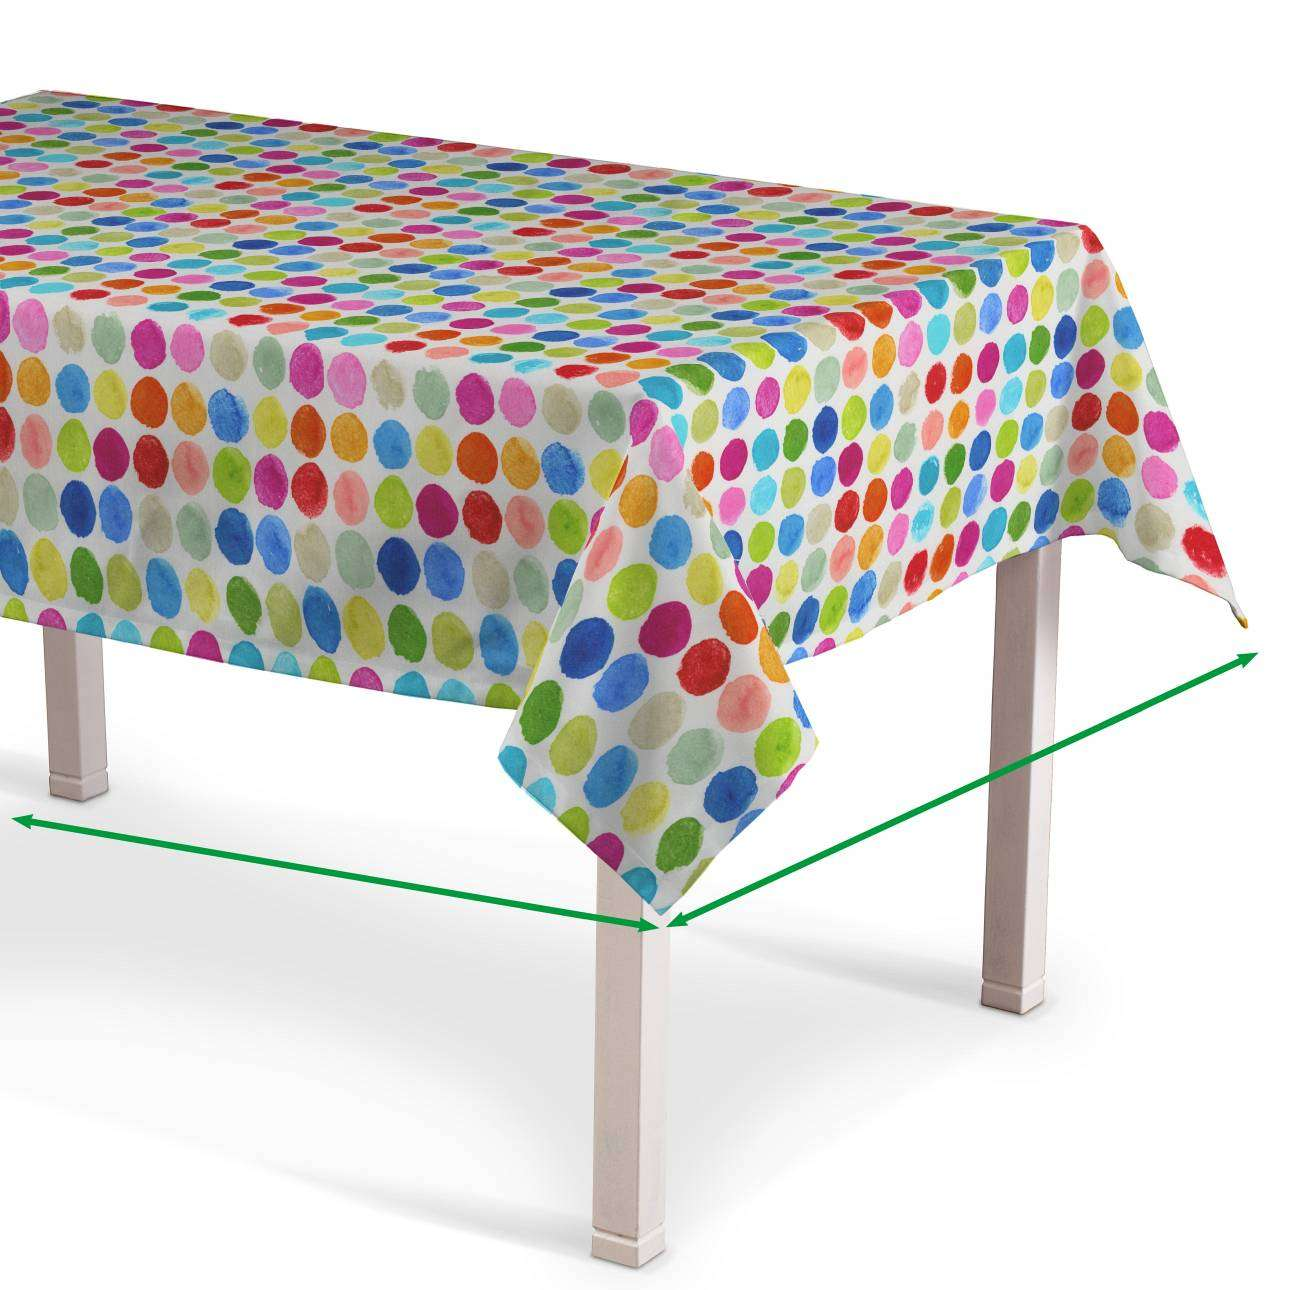 Rectangular tablecloth in collection New Art, fabric: 140-26